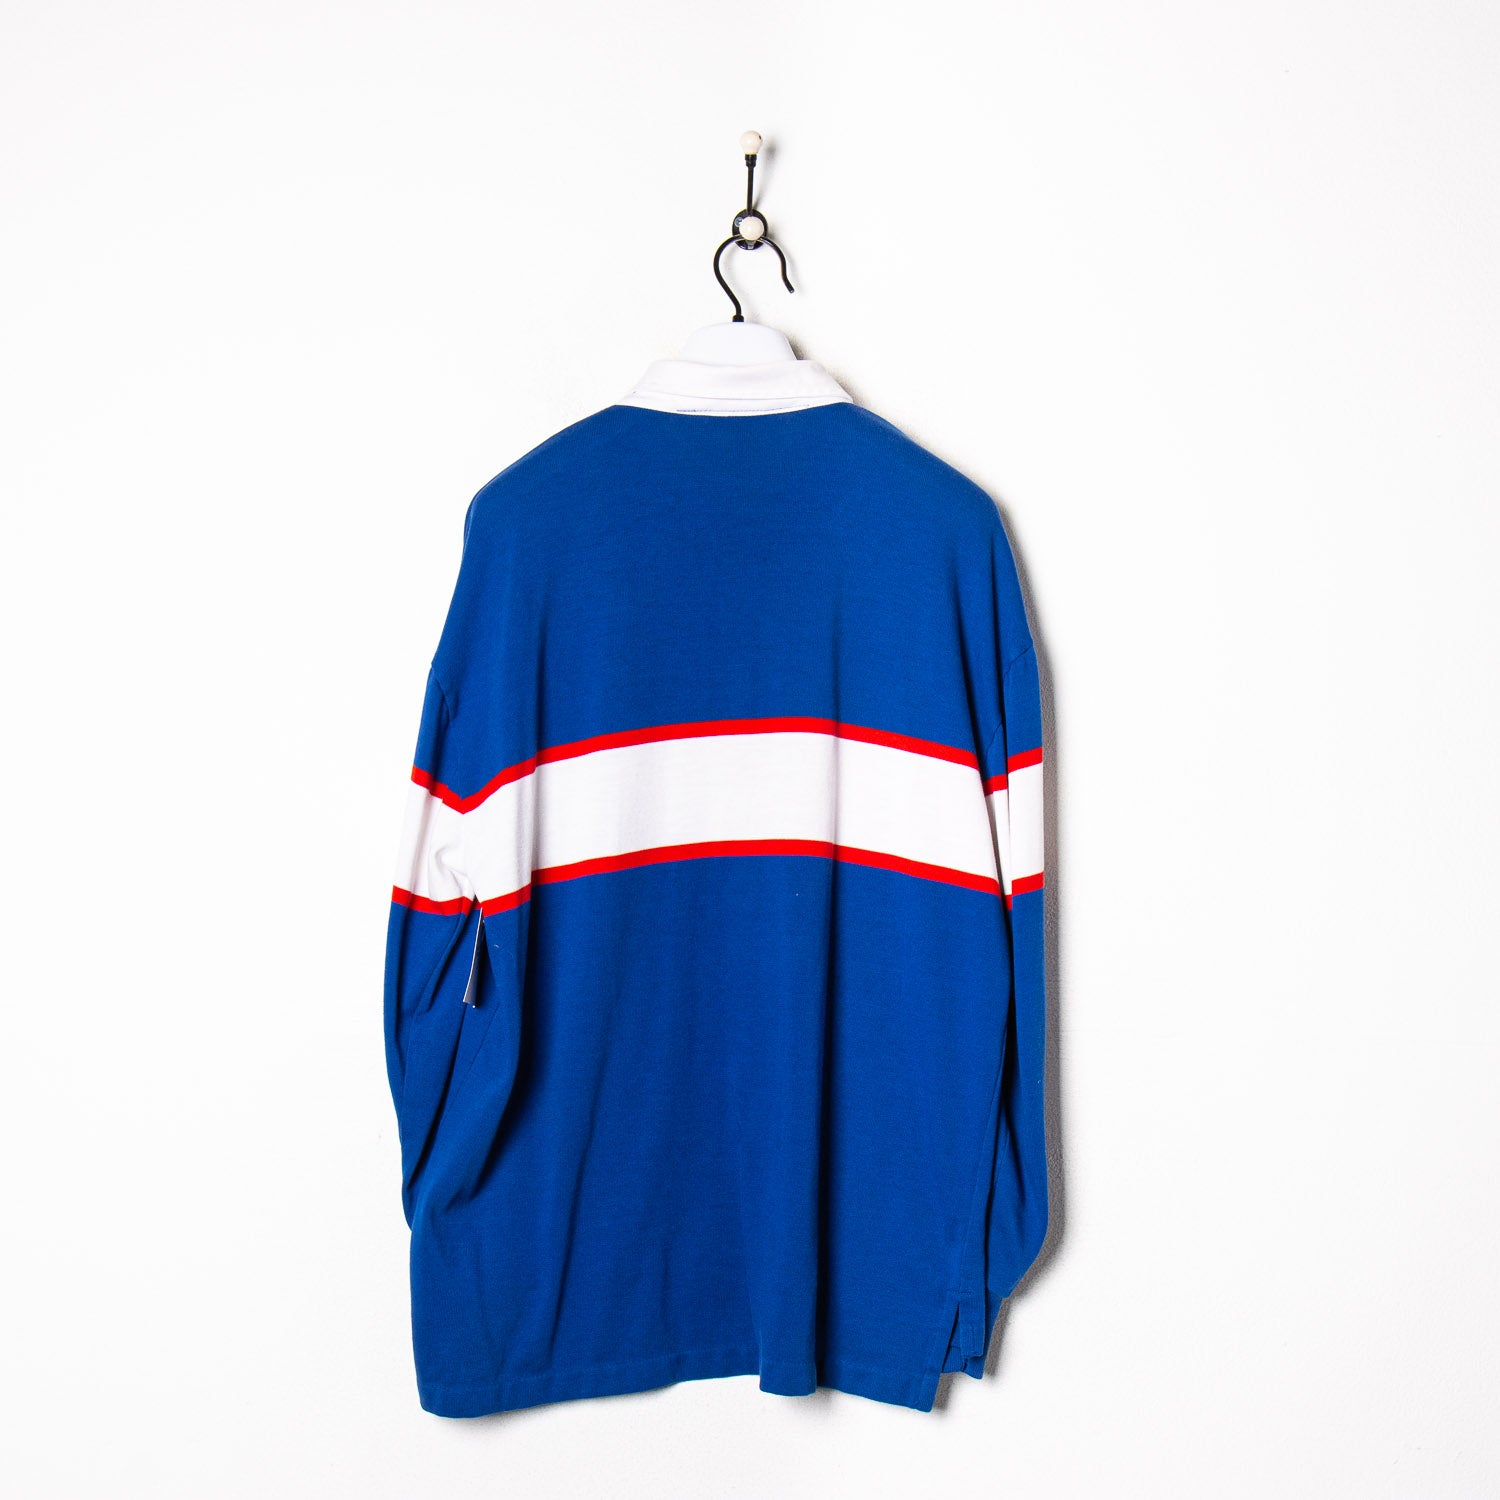 C.P. Company Shirt White XL